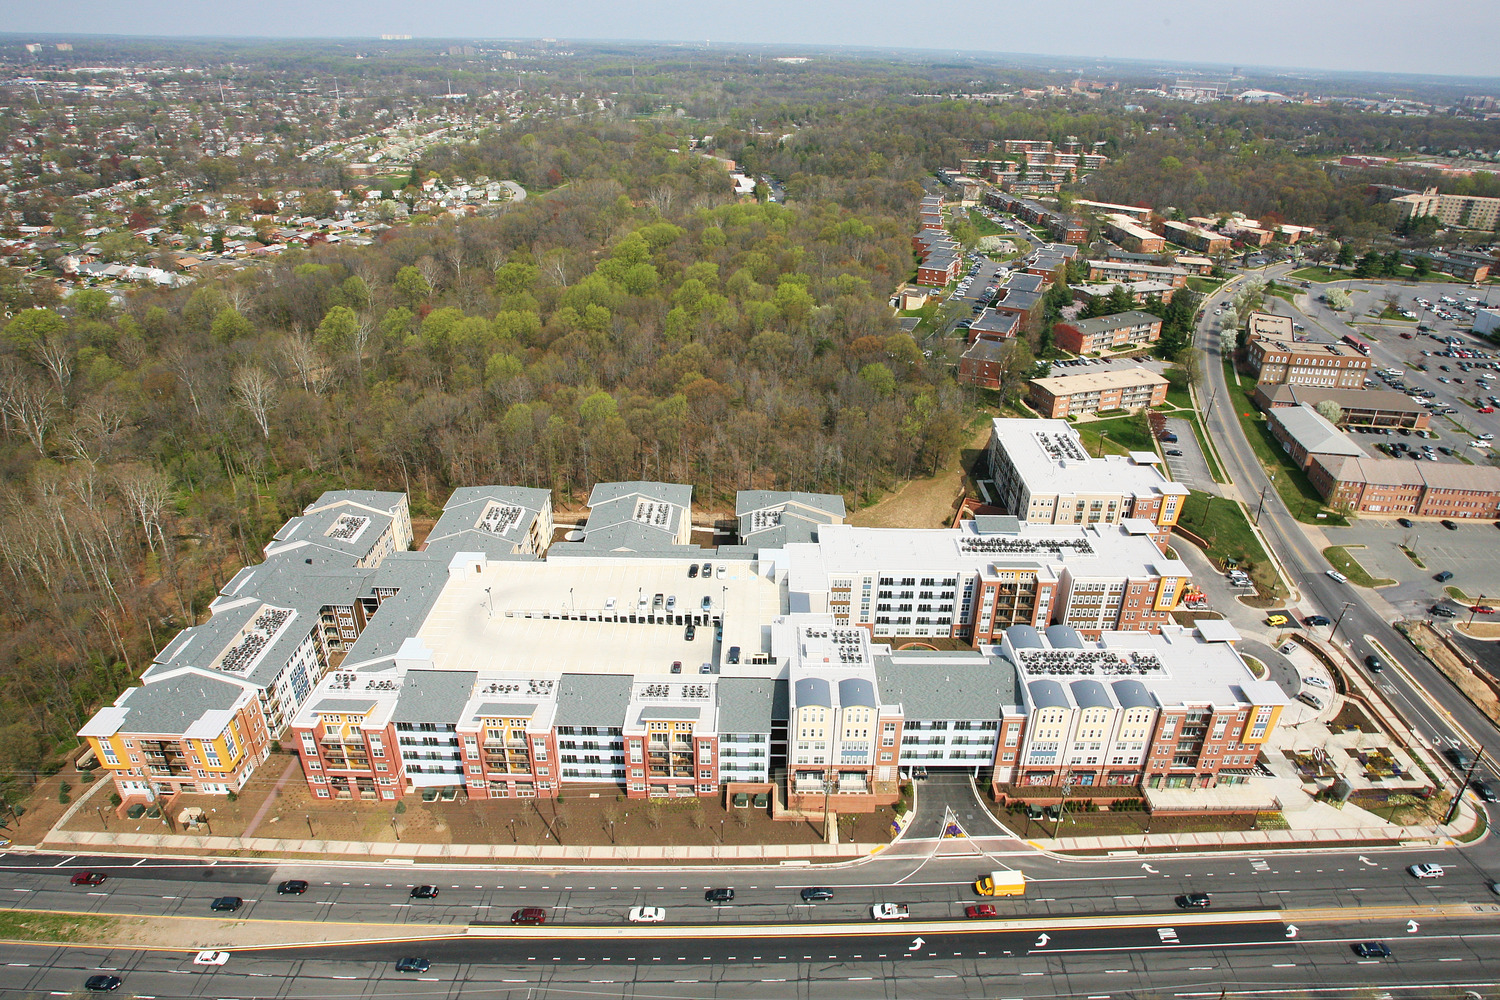 CBG builds Post Park, a 396 Multifamily Apartments Surrounding Precast Garage in Hyattsville, MD - Image #3